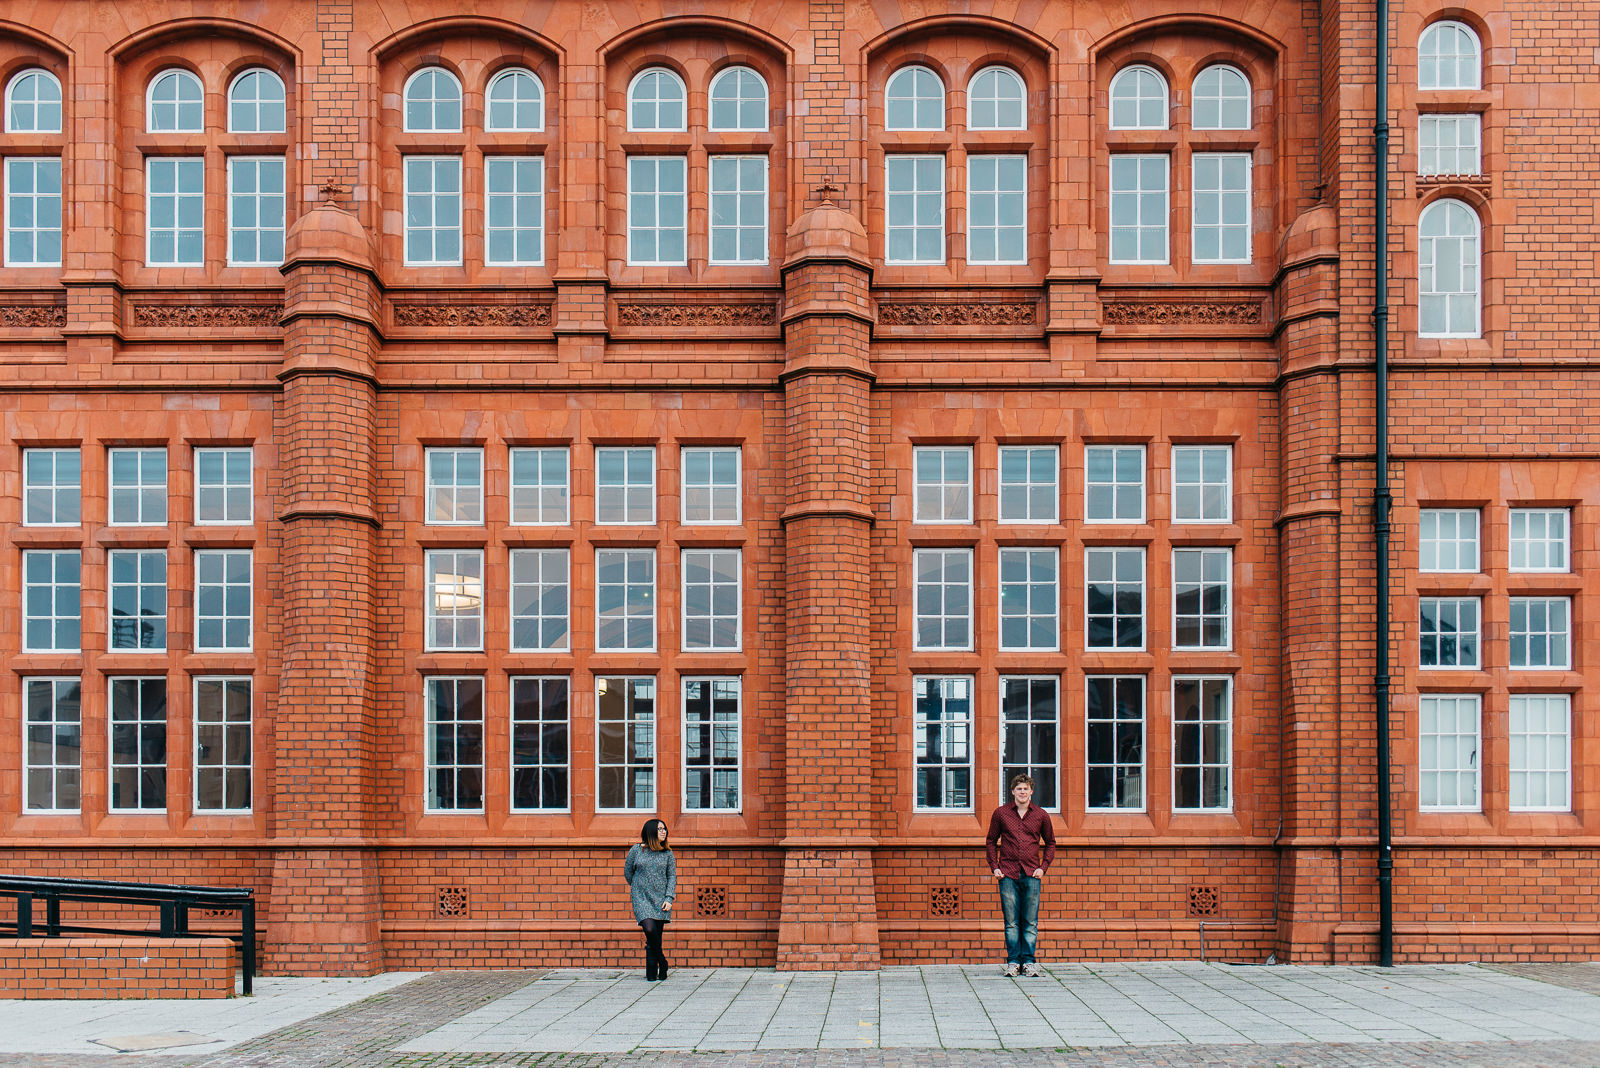 Cardiff bay Pierhead building engagement // Elaine Williams Photography